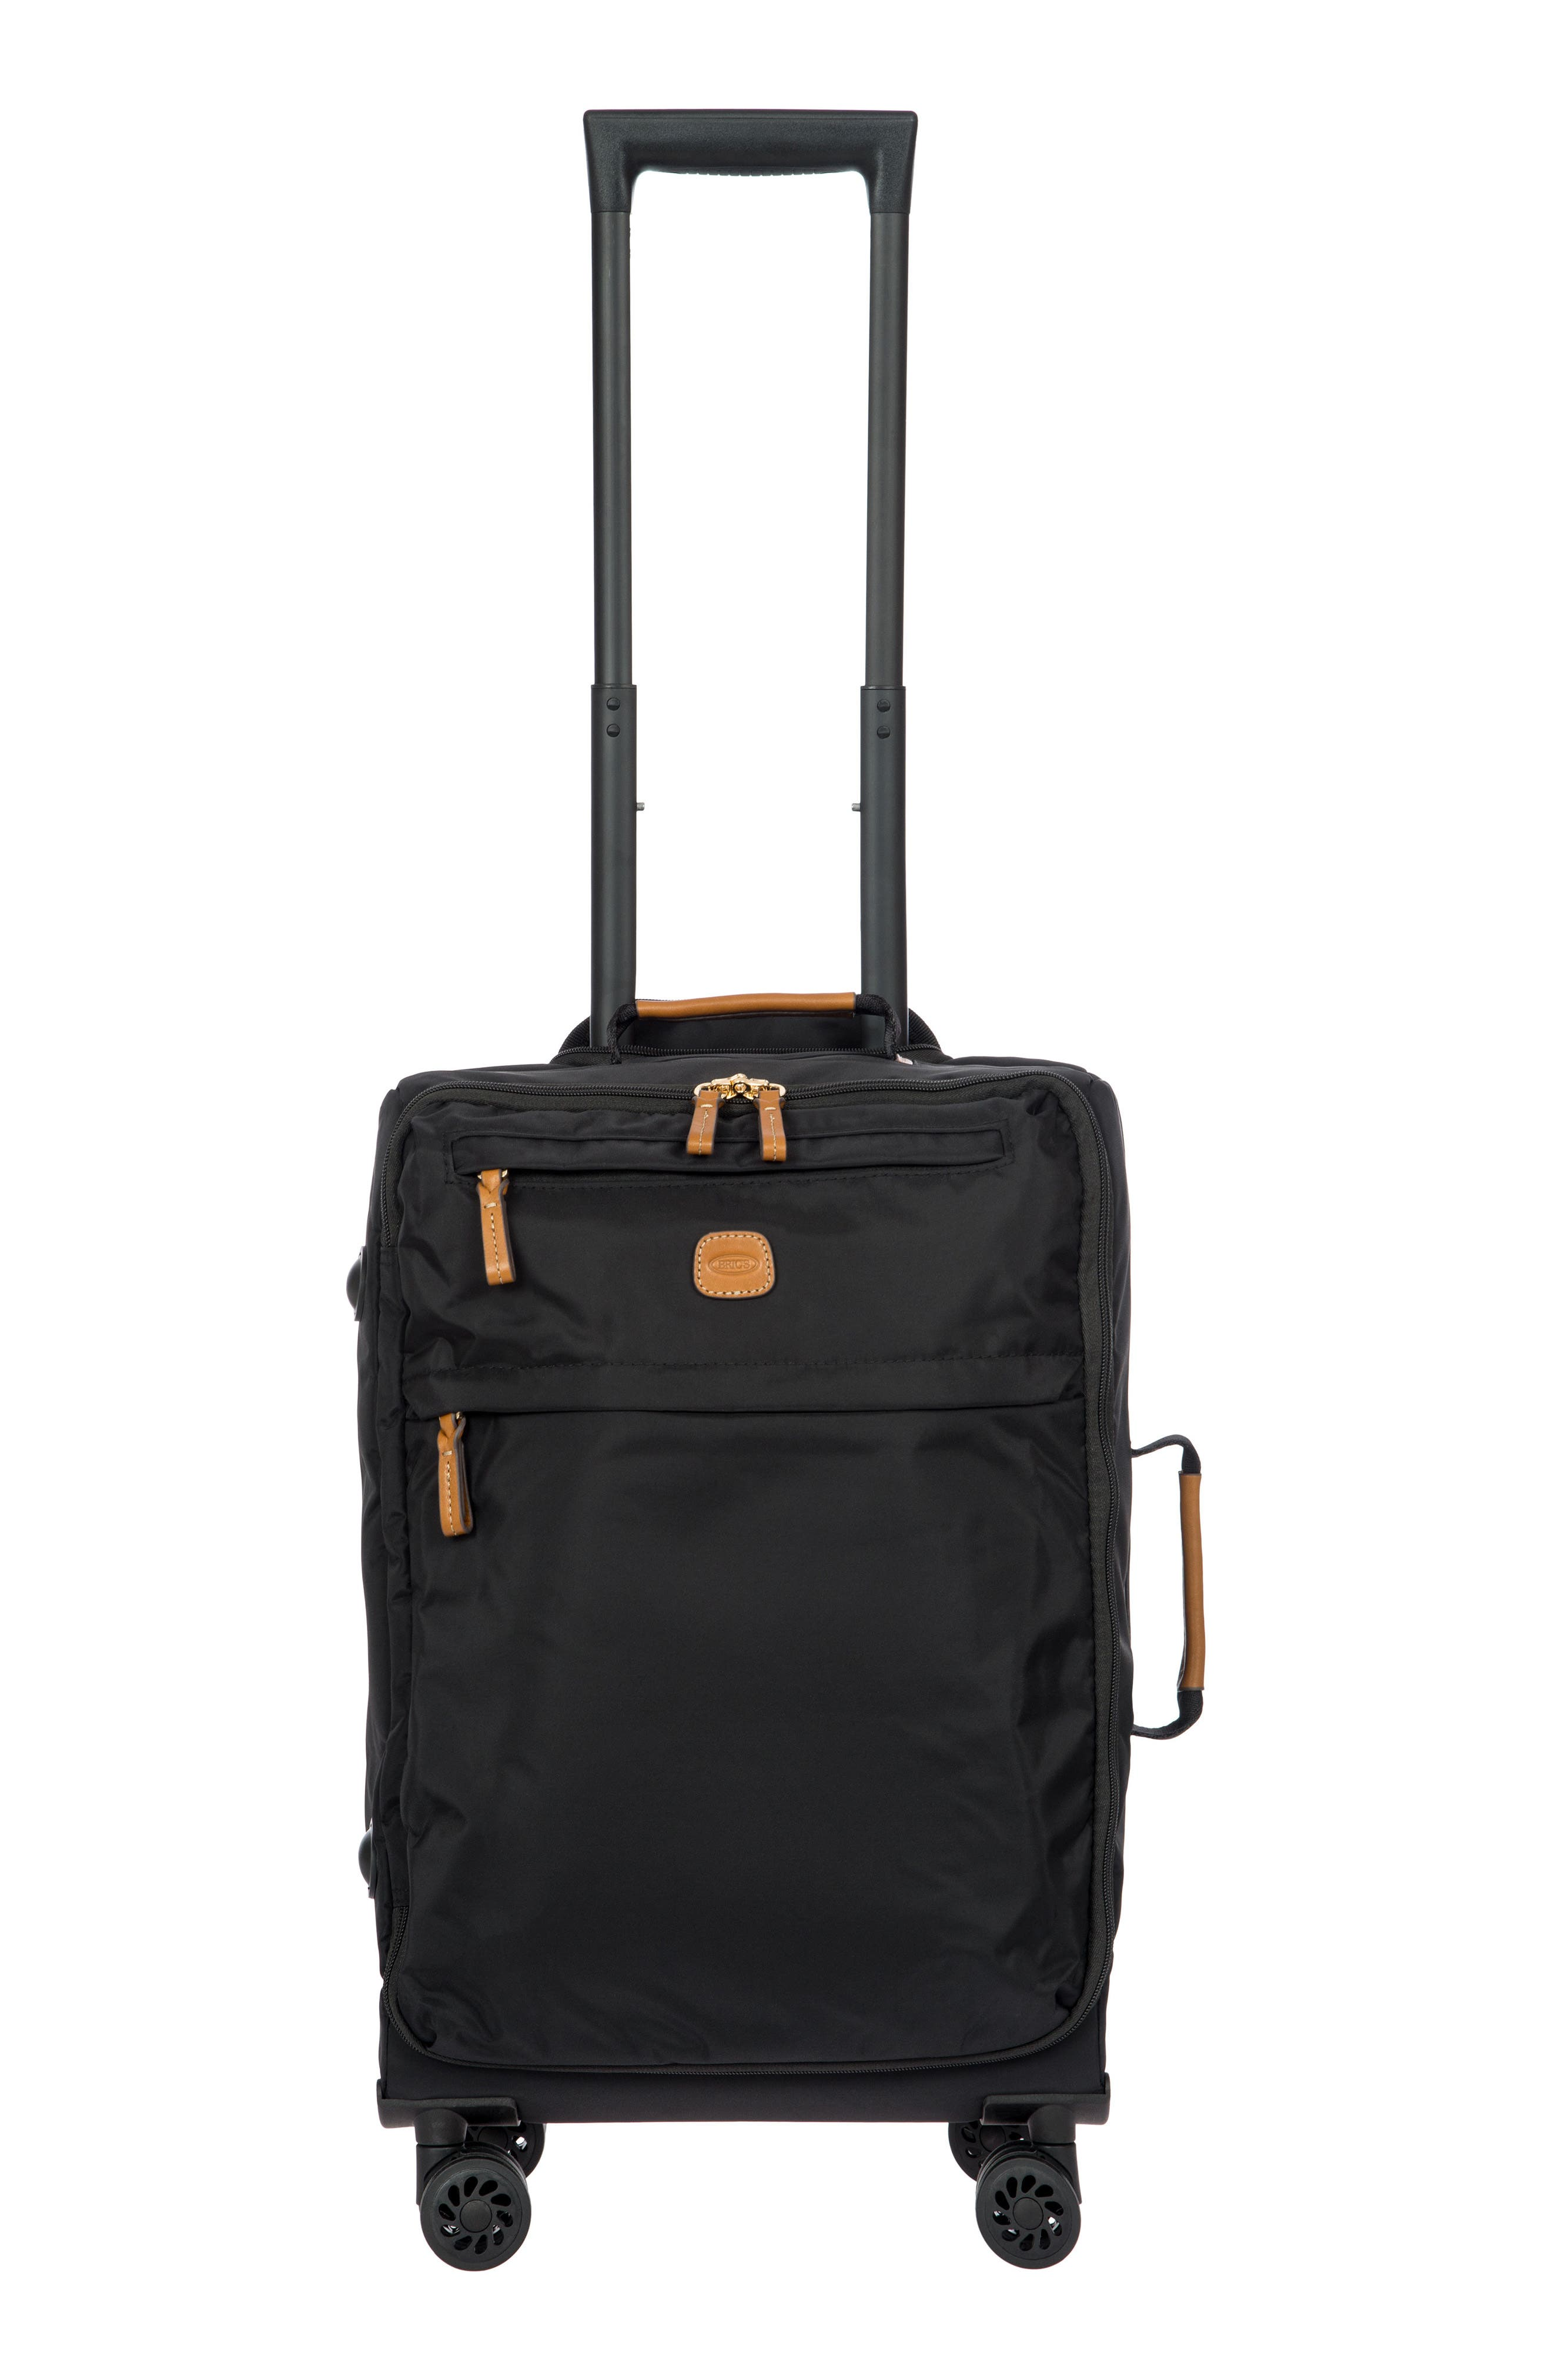 Main Image - Bric's X-Bag 21 Inch Spinner Carry-On